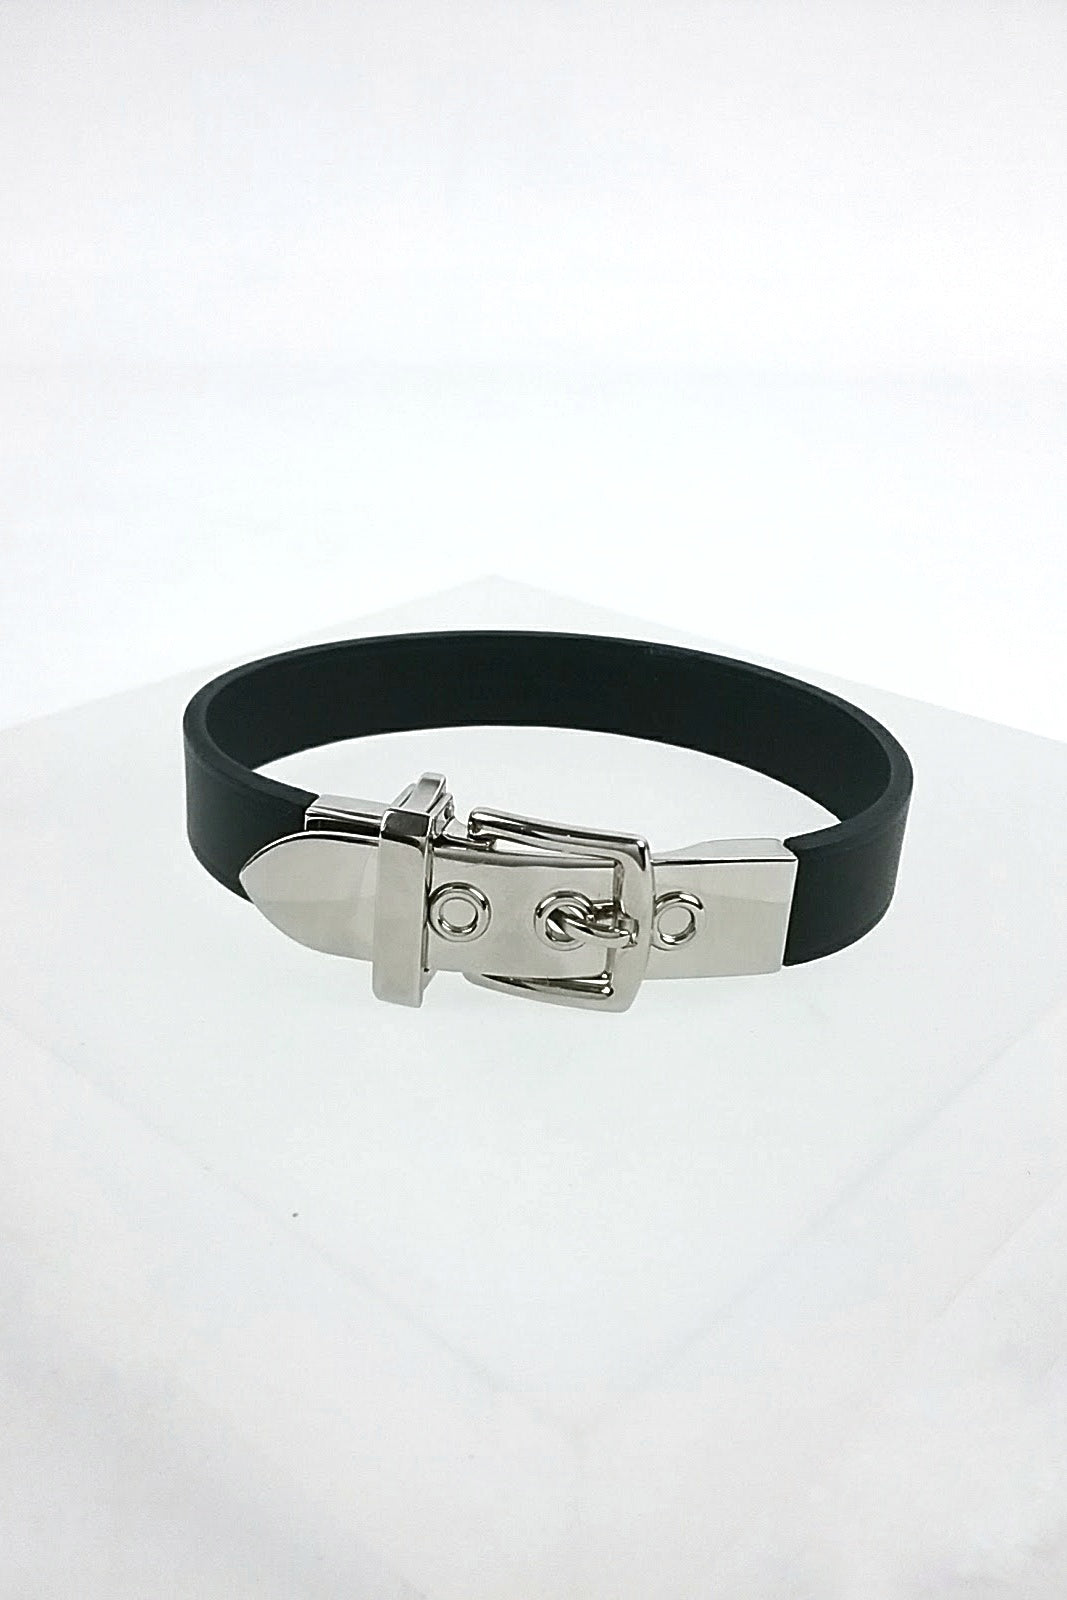 Black Leather Buckle Bracelet w/ PHW